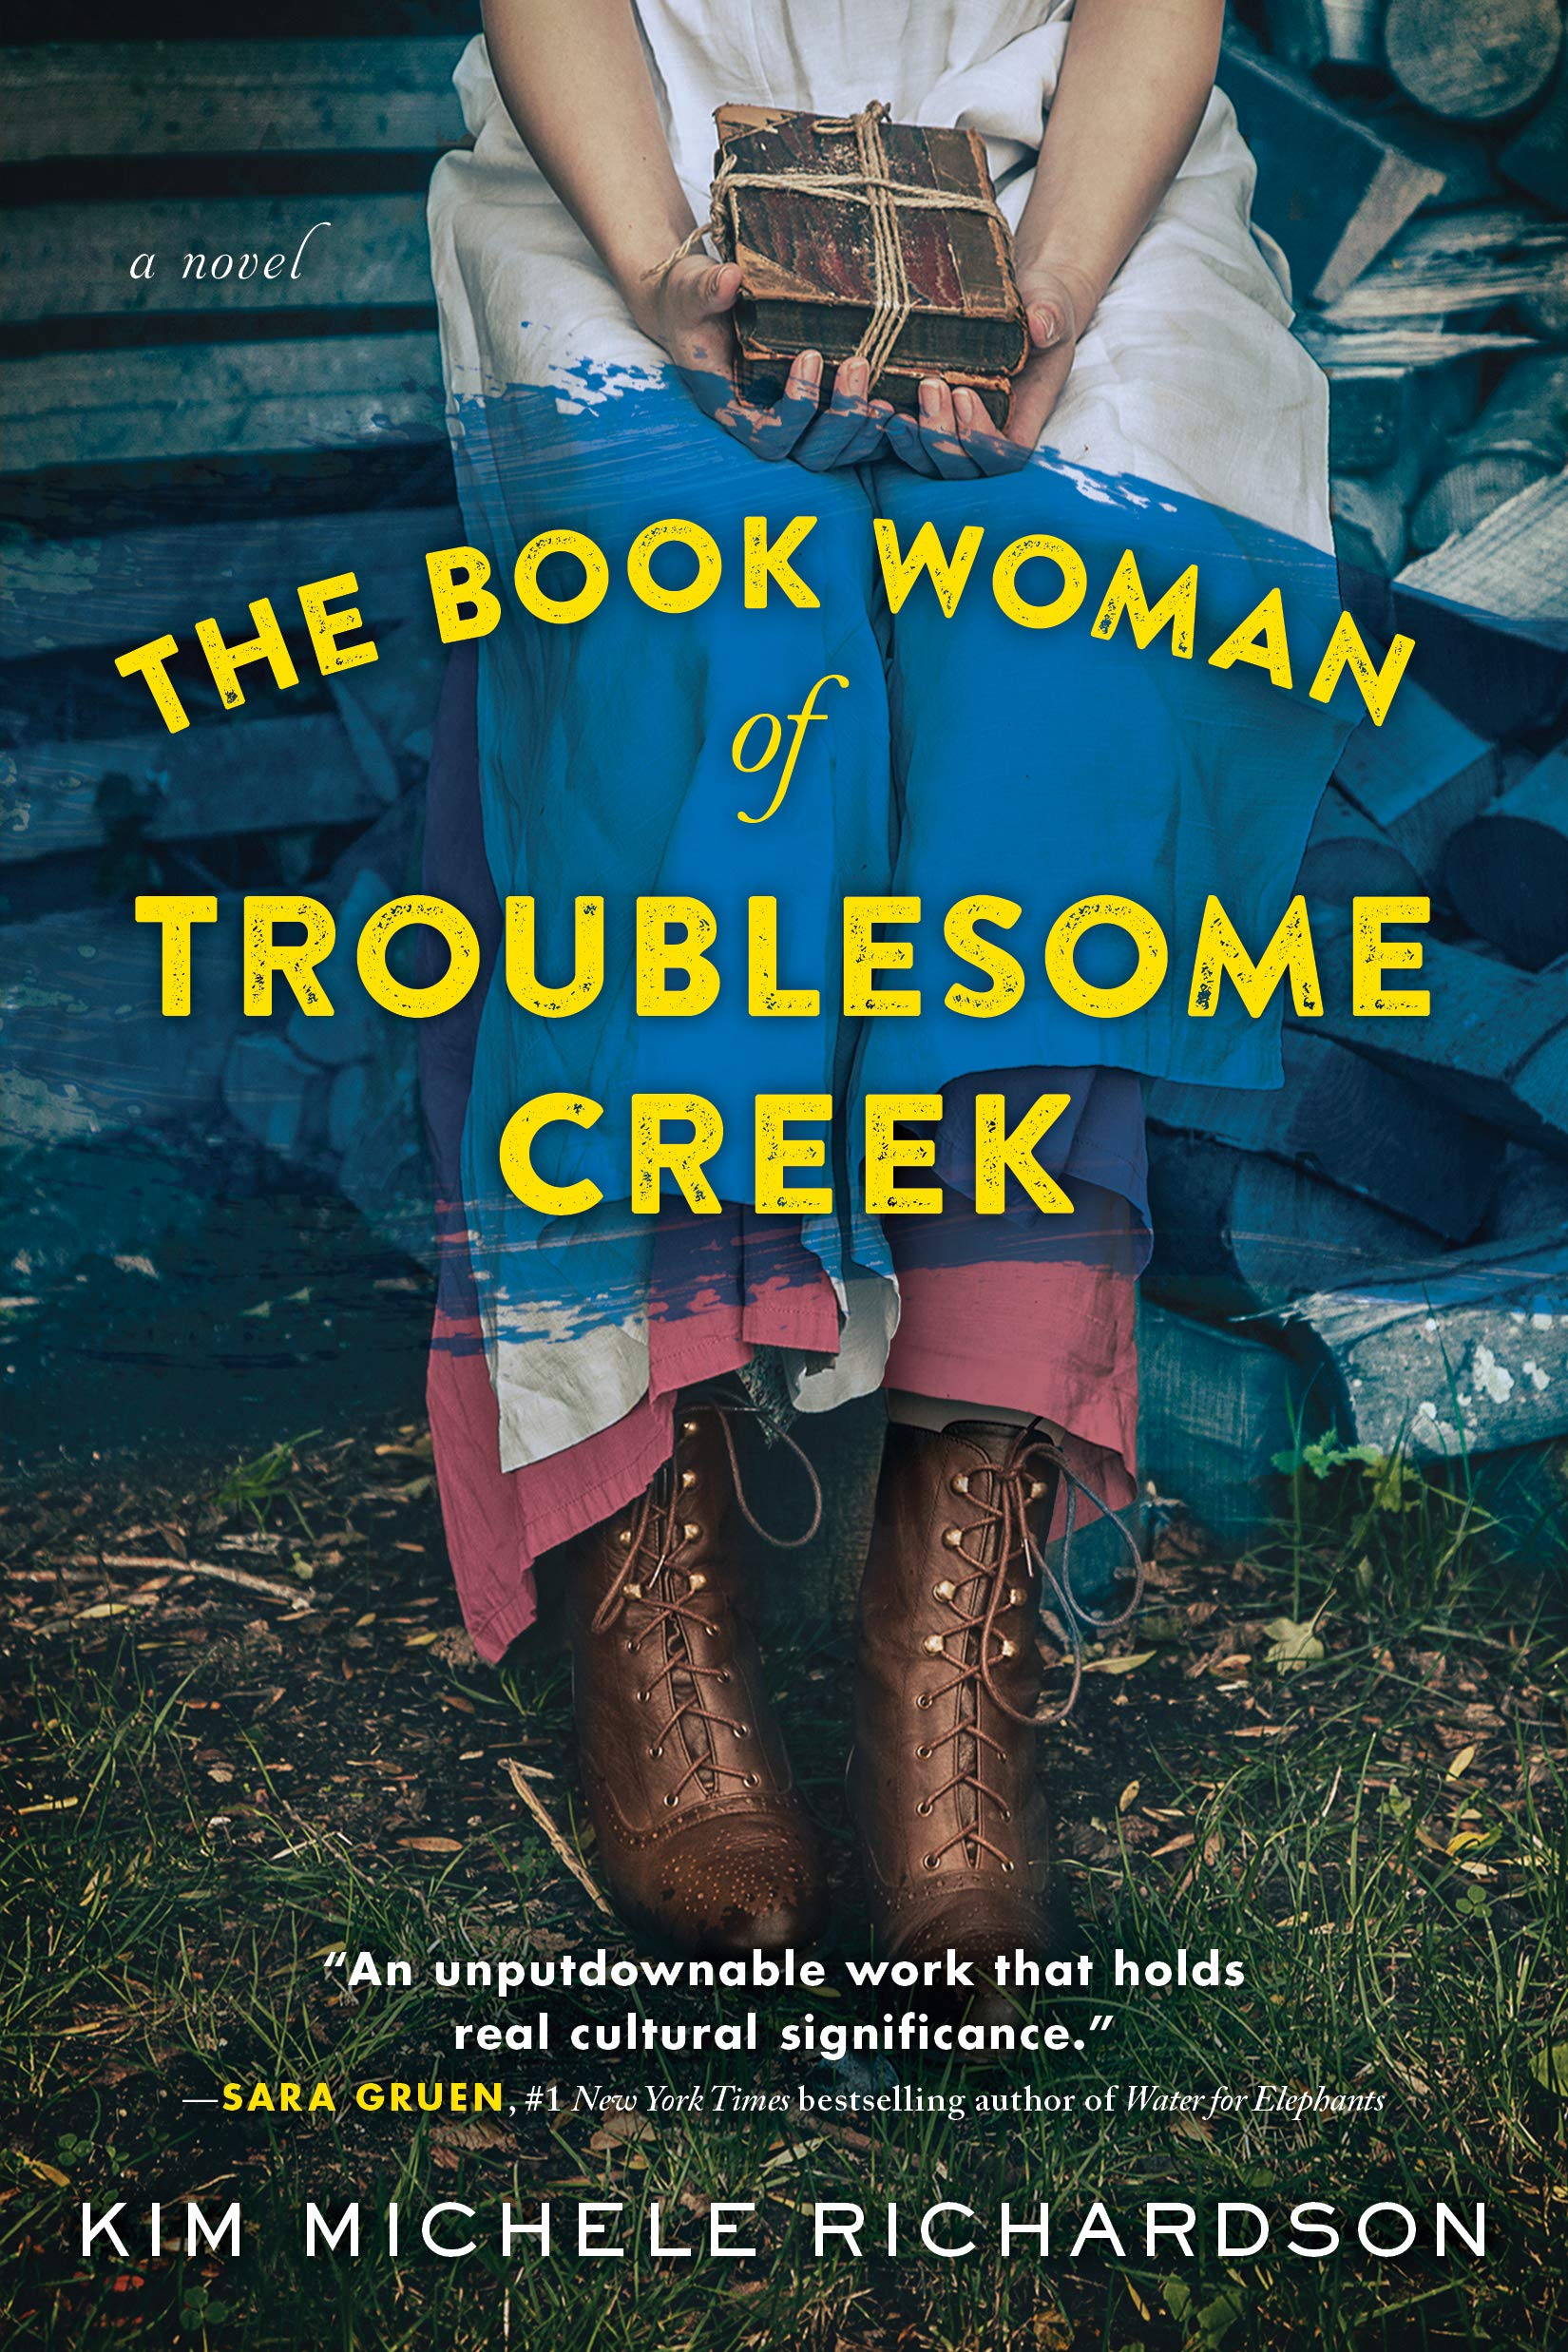 Introvert Book Club: The Book Woman of Troublesome Creek